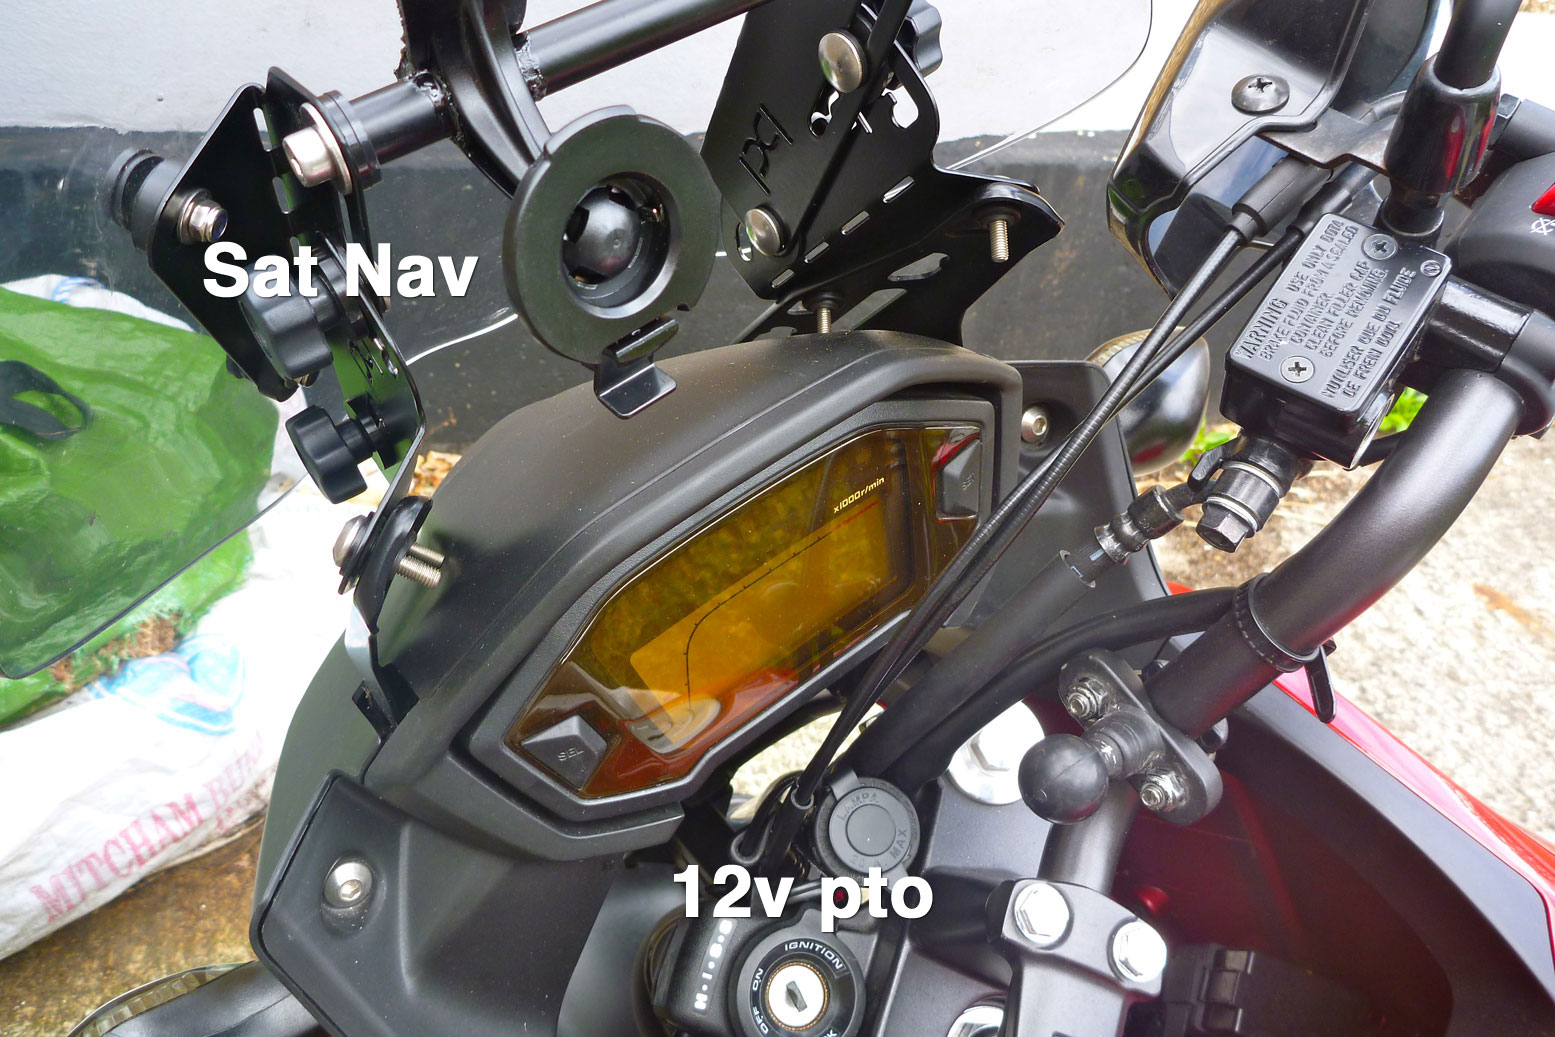 Cb500x Auxillary Power Satnav Mount 12v Socket Wiring Diagram Getting The Wire To Ignition Key Area For Pto Was Easy Too Just Two Hex Bolts Removed Black Lhs Side Panel And Feeds